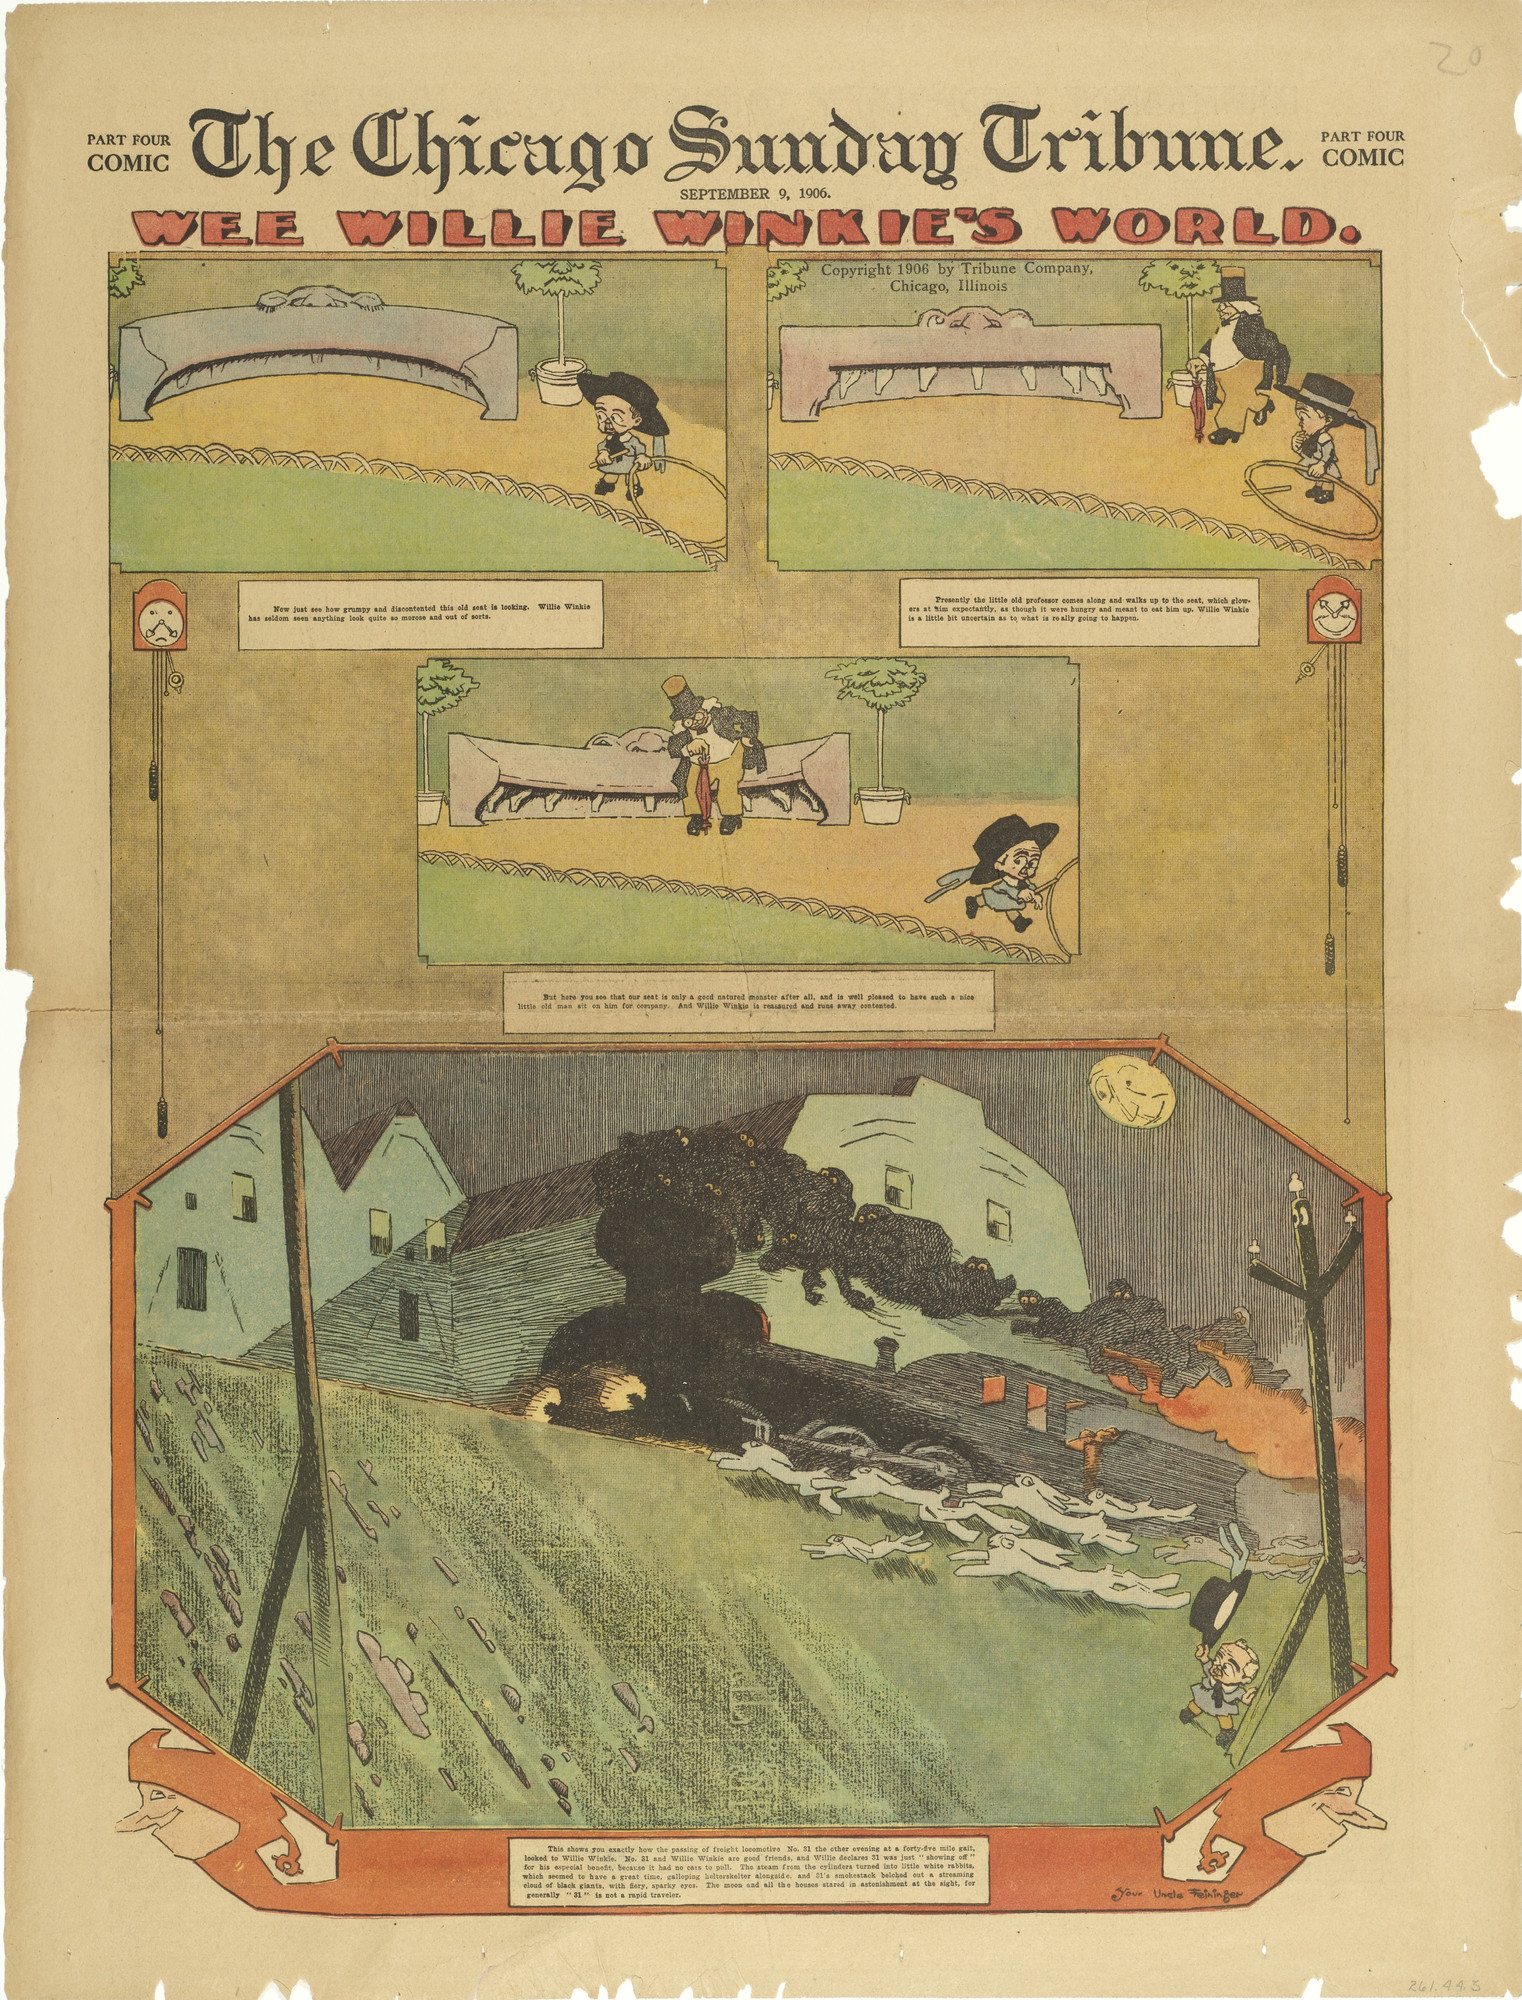 Lyonel Feininger. Wee Willie Winkie's World fromThe Chicago Sunday Tribune. September 9, 1906